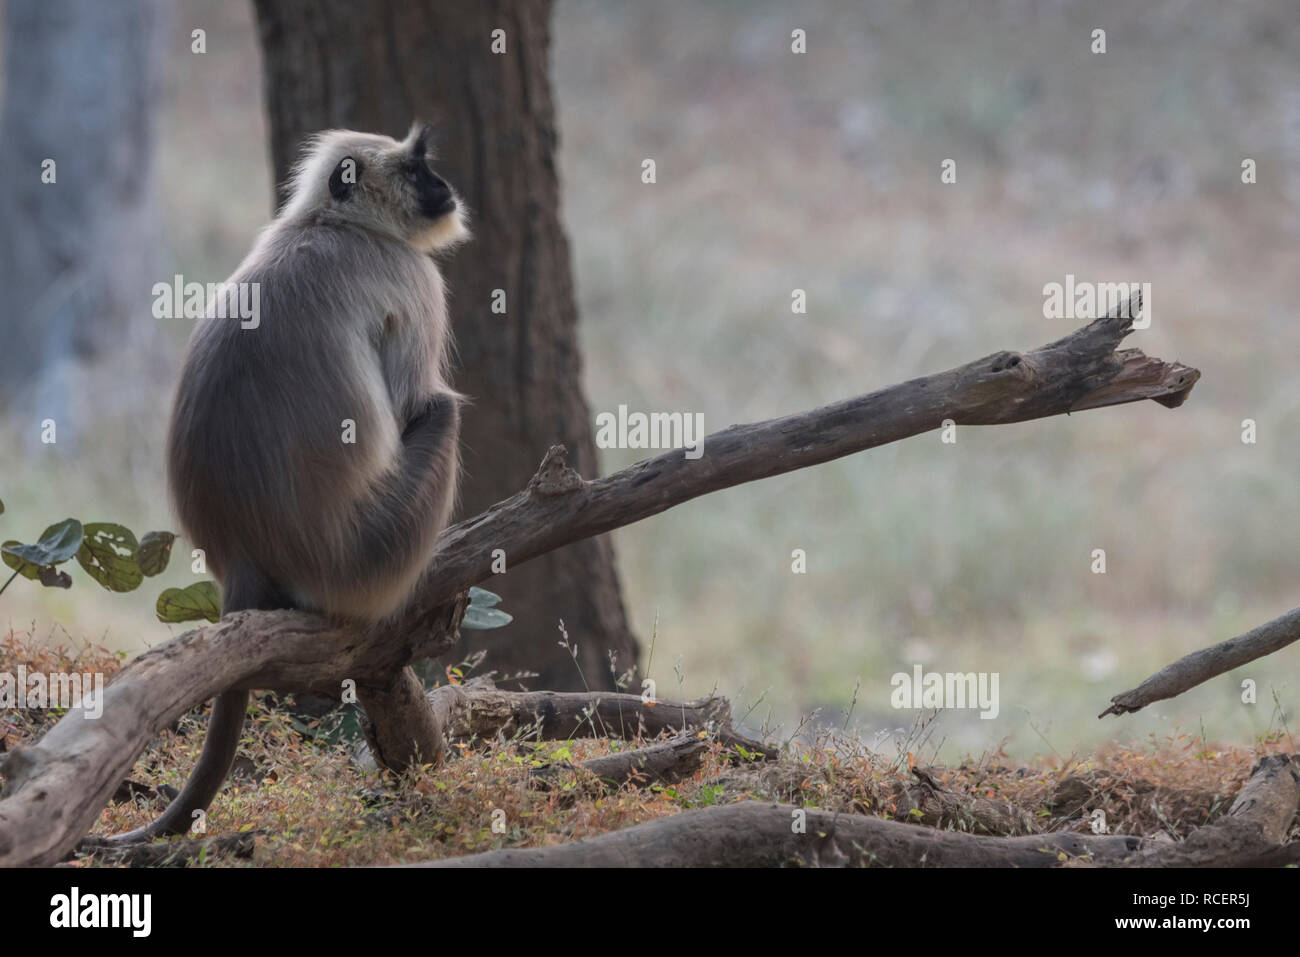 A gray langur sitting on a tree trunk in Bandhavgarth national park , India - Stock Image